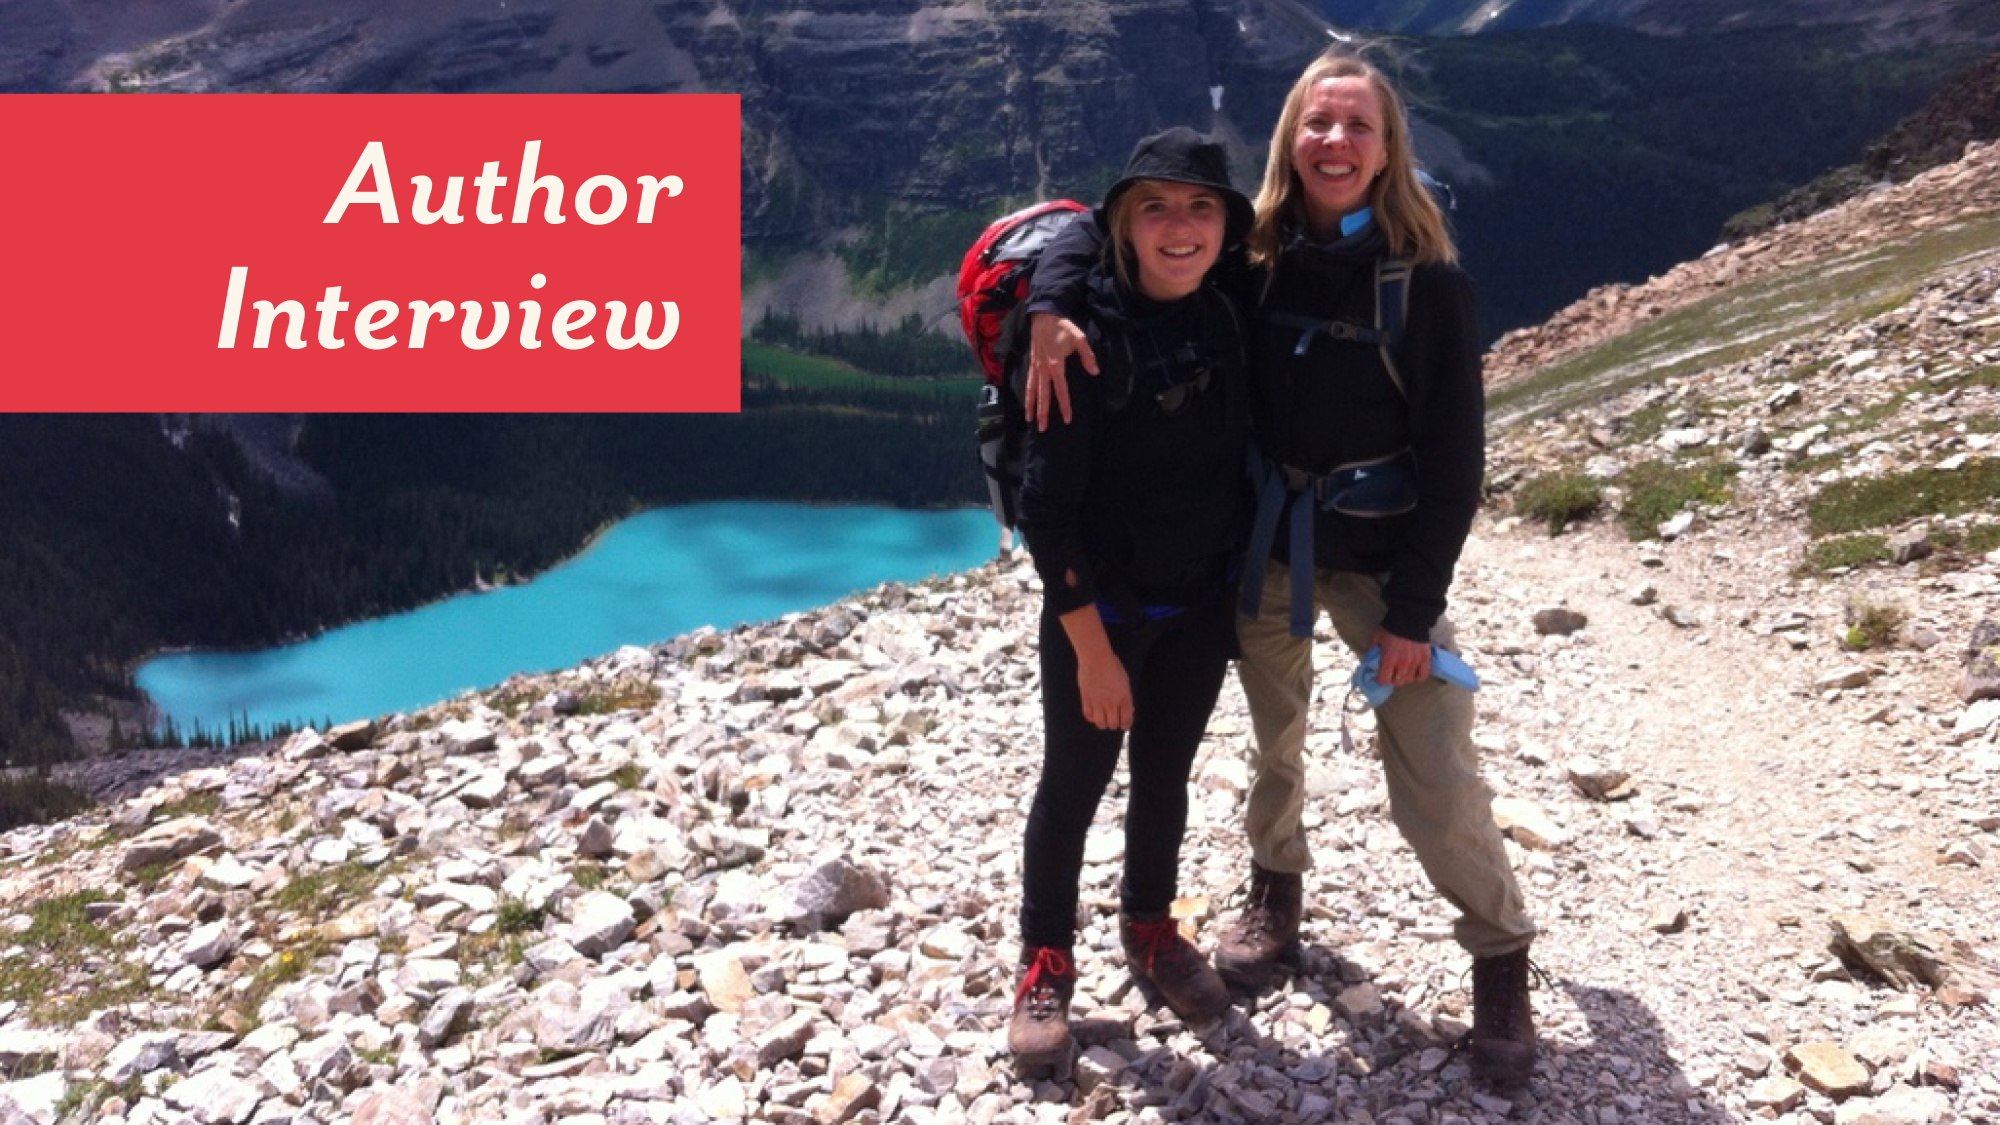 Author photo of Mandi Kujawa, on a hike with her daughter, Hana, in the mountains